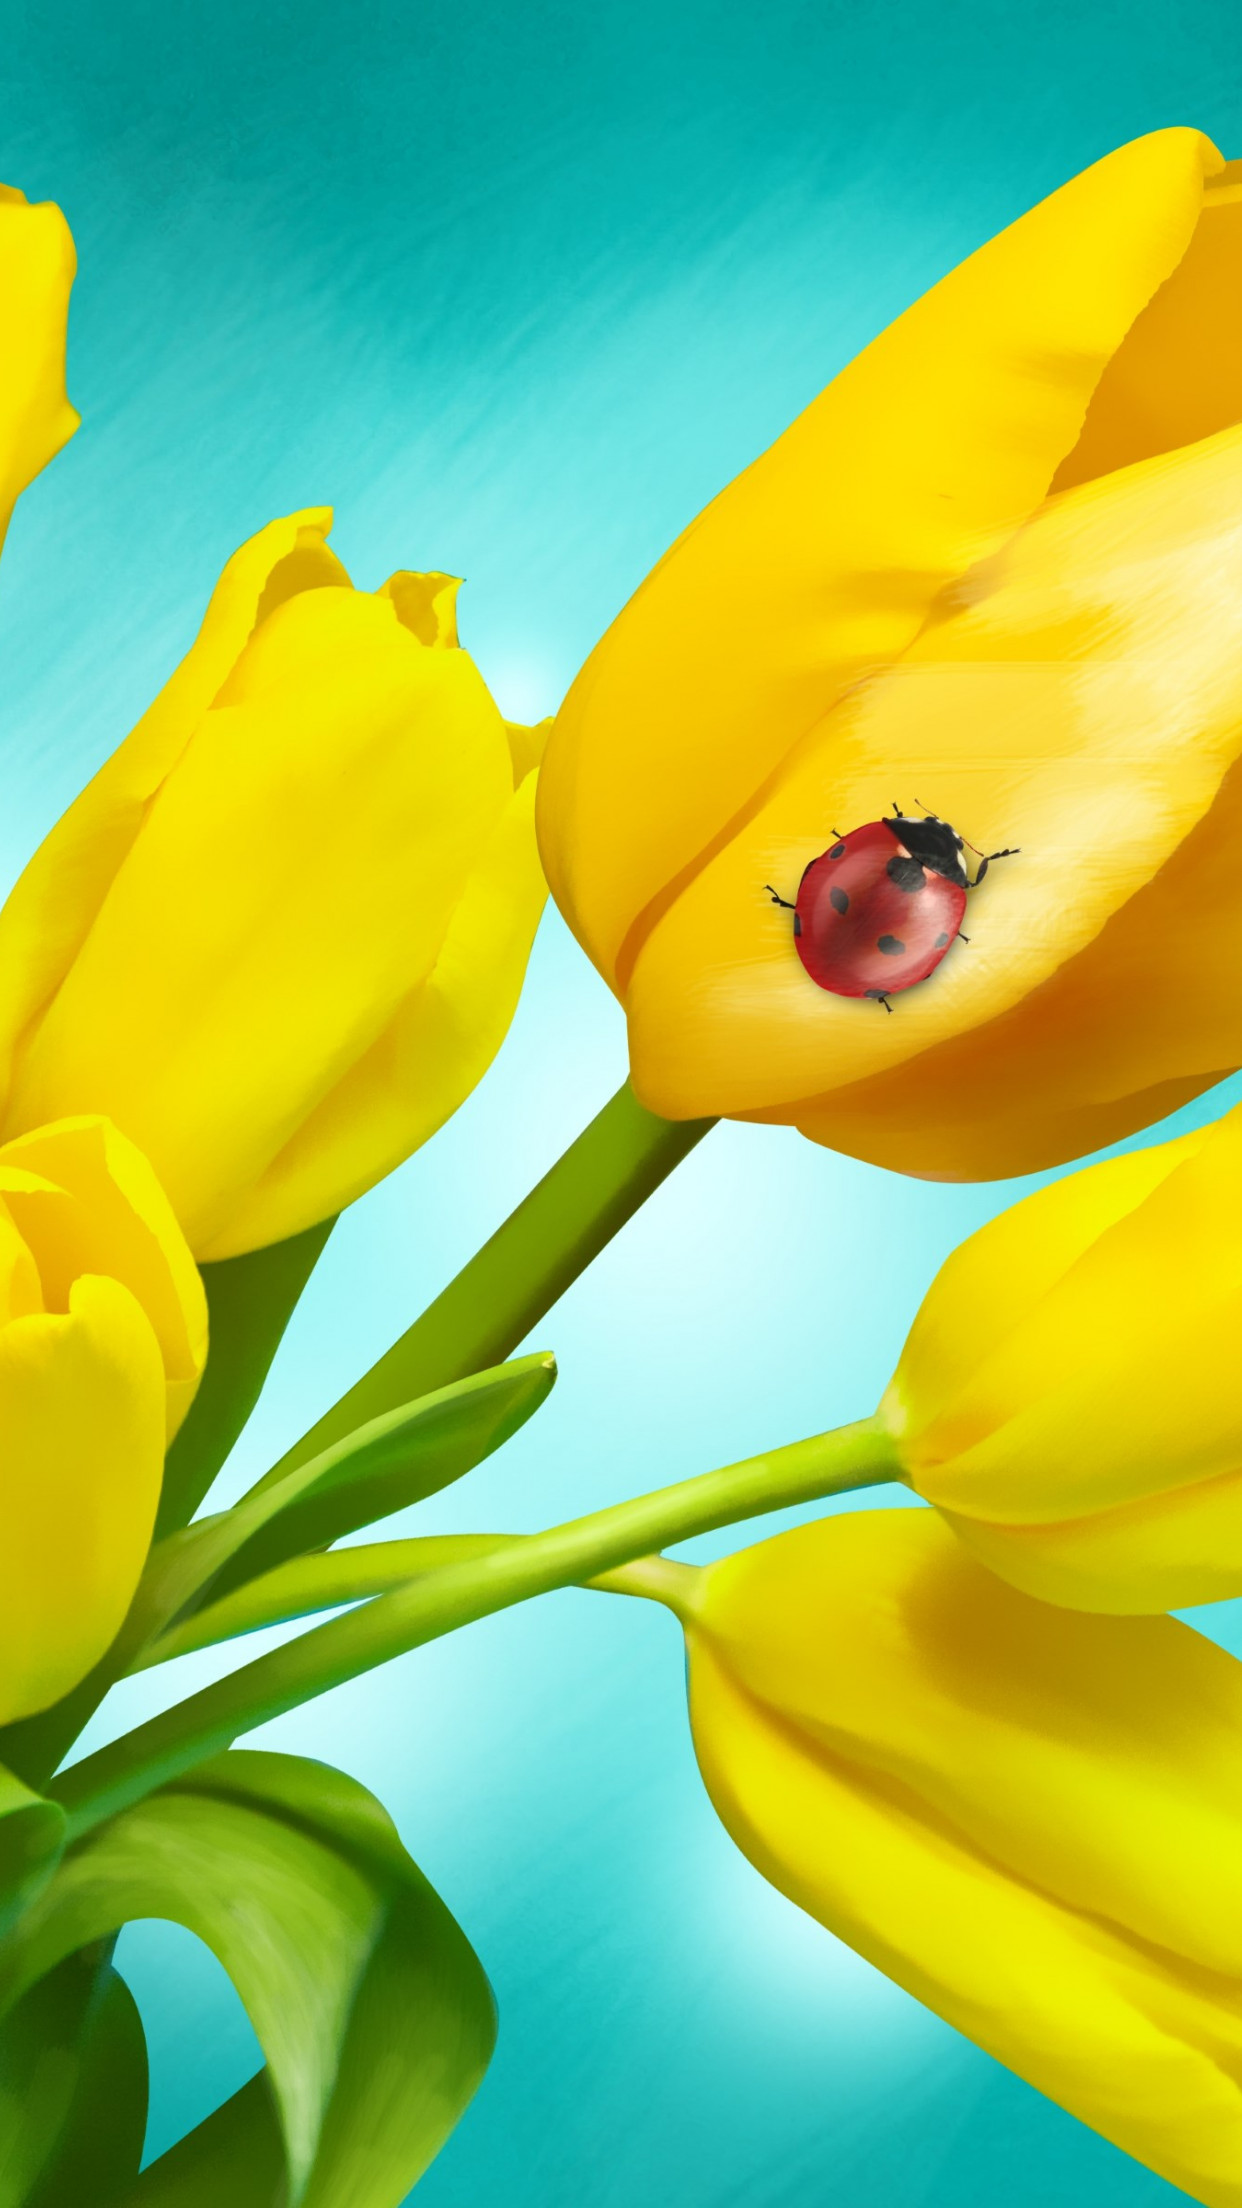 Ladybird on yellow tulips wallpaper 1242x2208